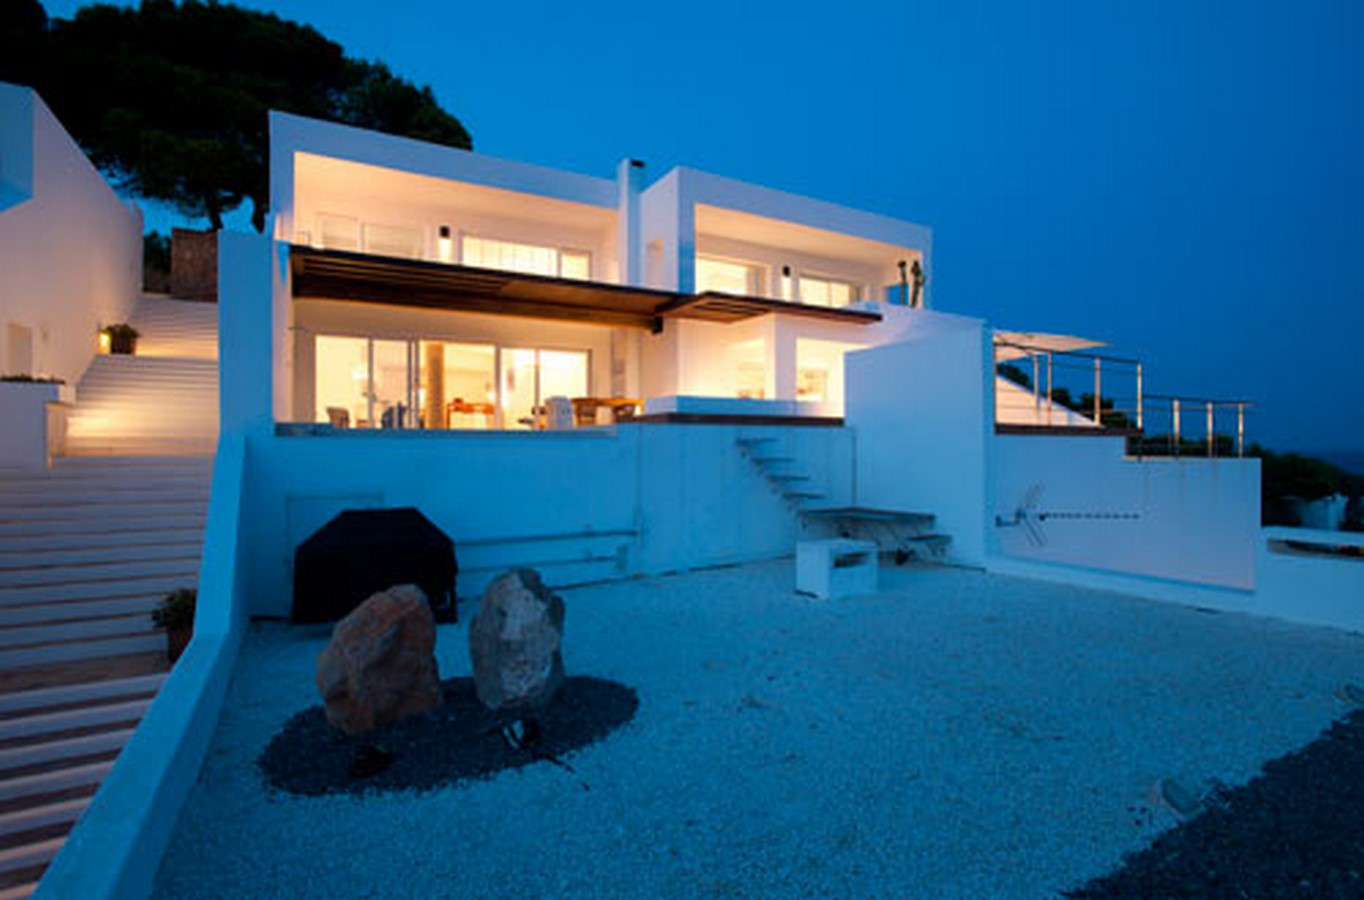 20 Best Examples of Contemporary style house - Sheet24